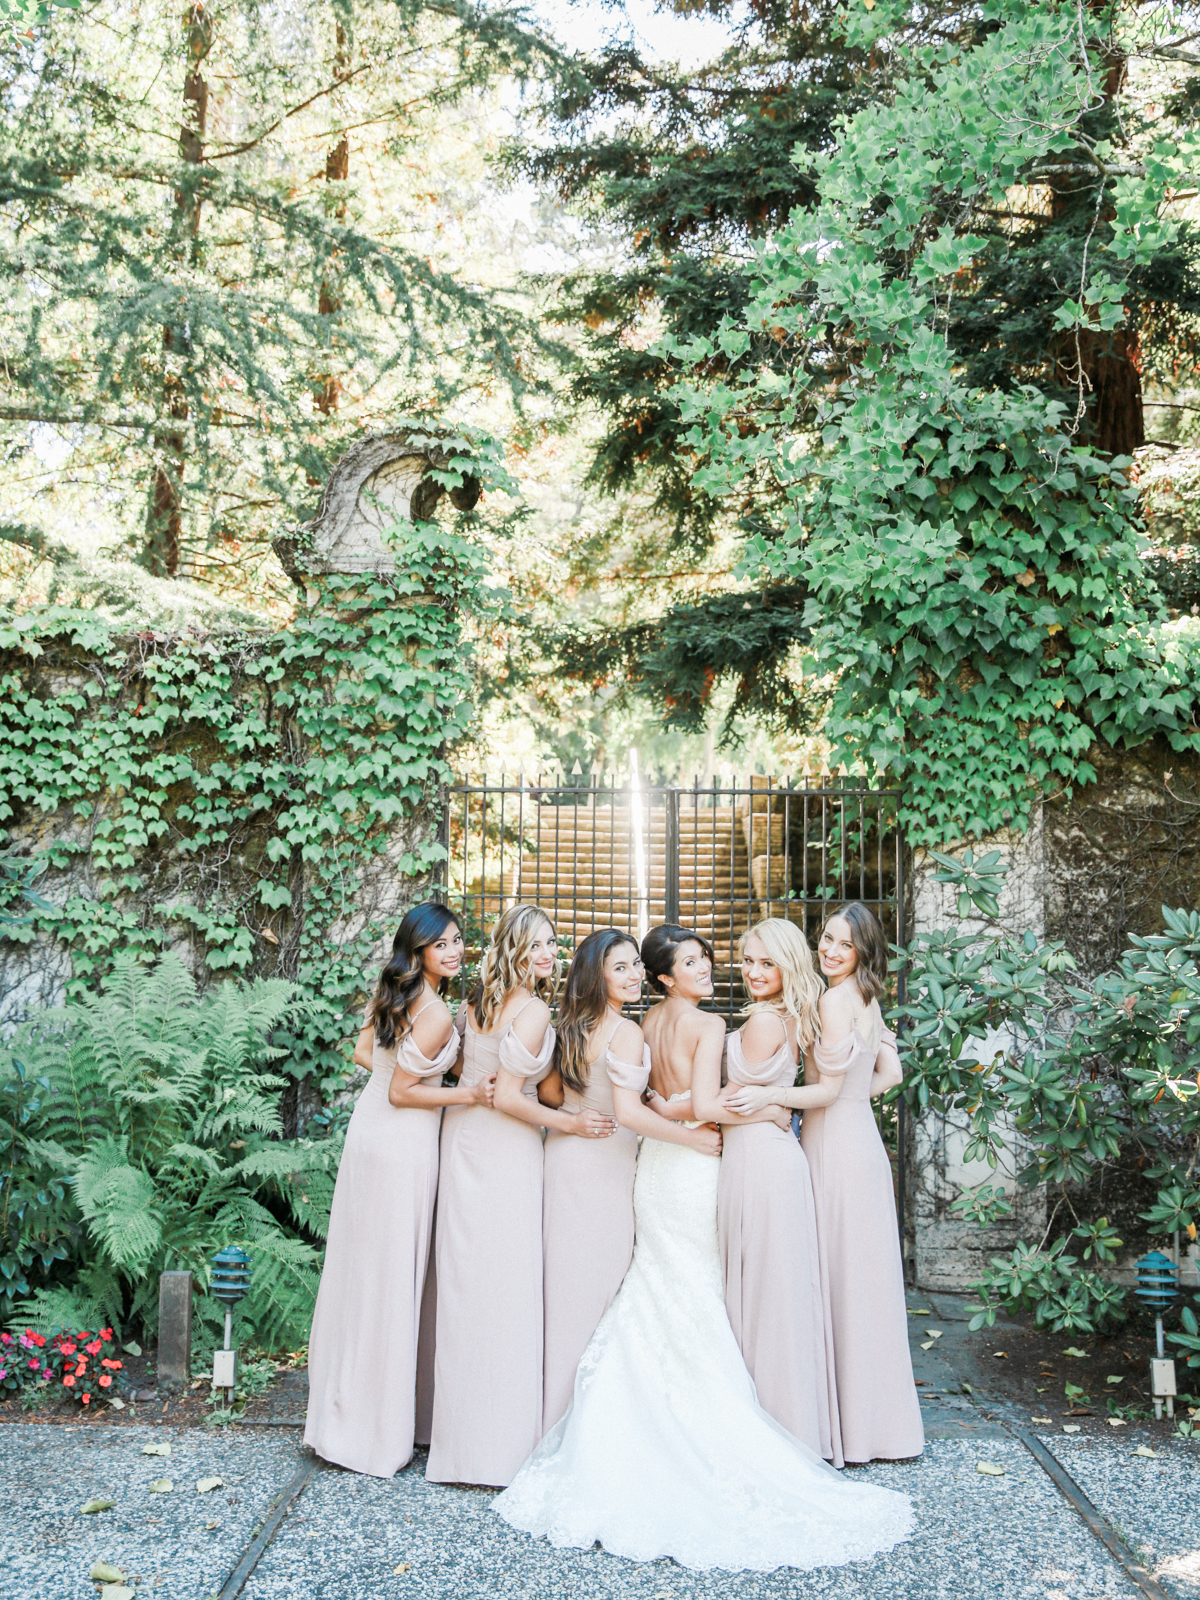 Jenny Soi Photography - SM bridal party-424.jpg